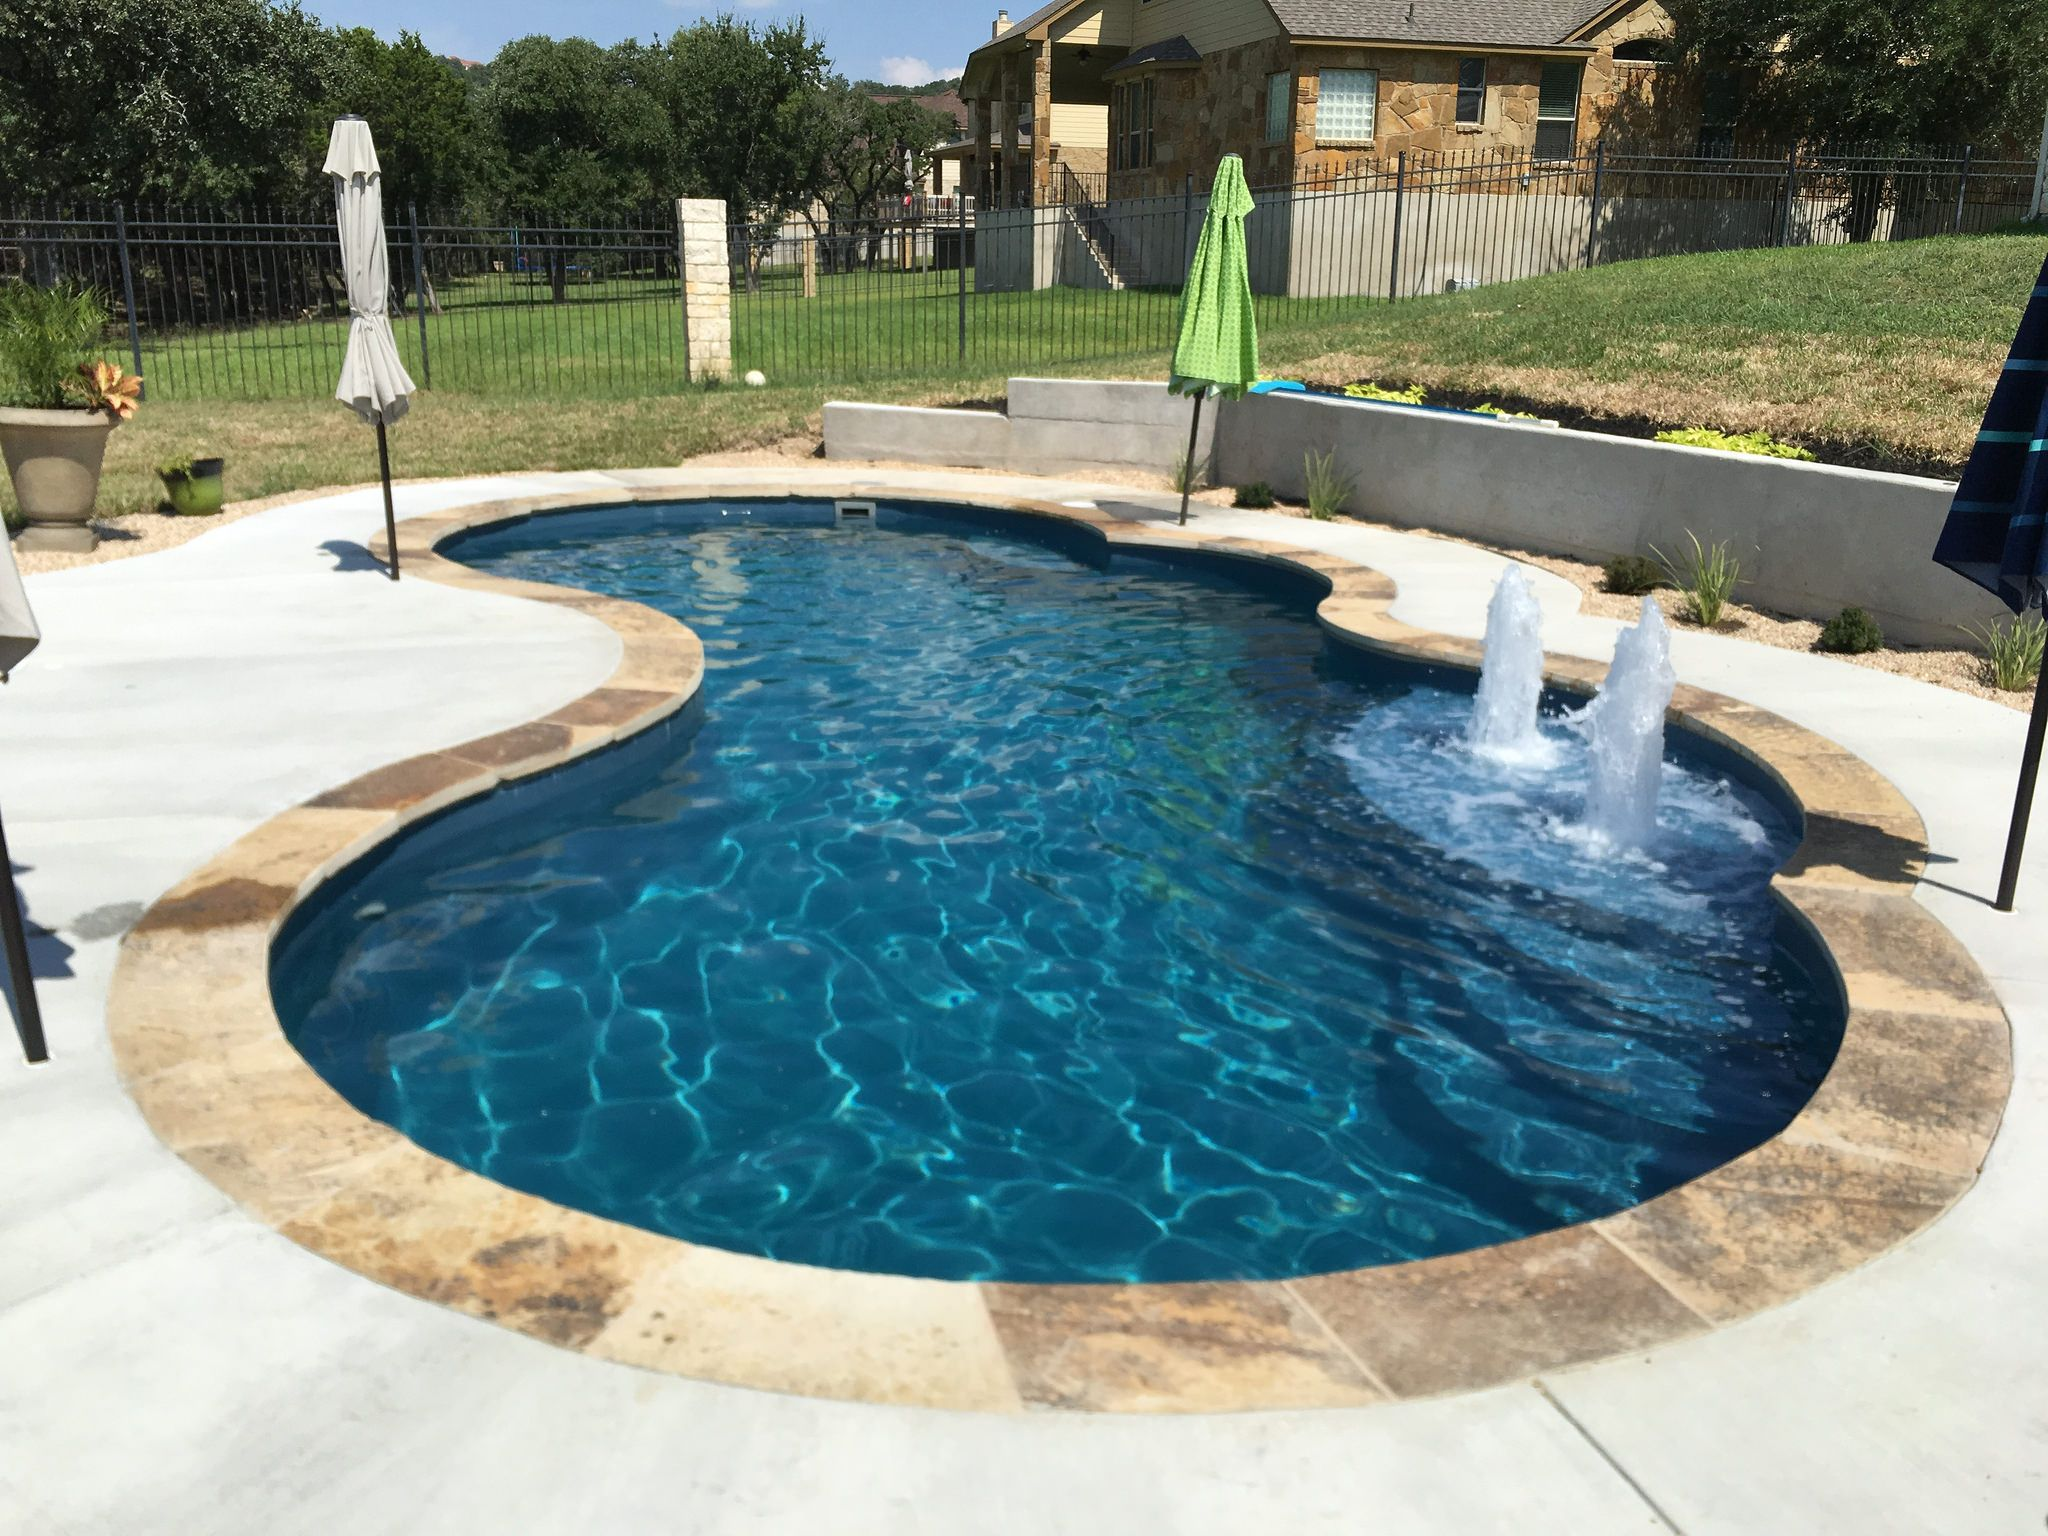 This 16 39 X 32 39 Gemini Shaped Fiberglass Inground Pool